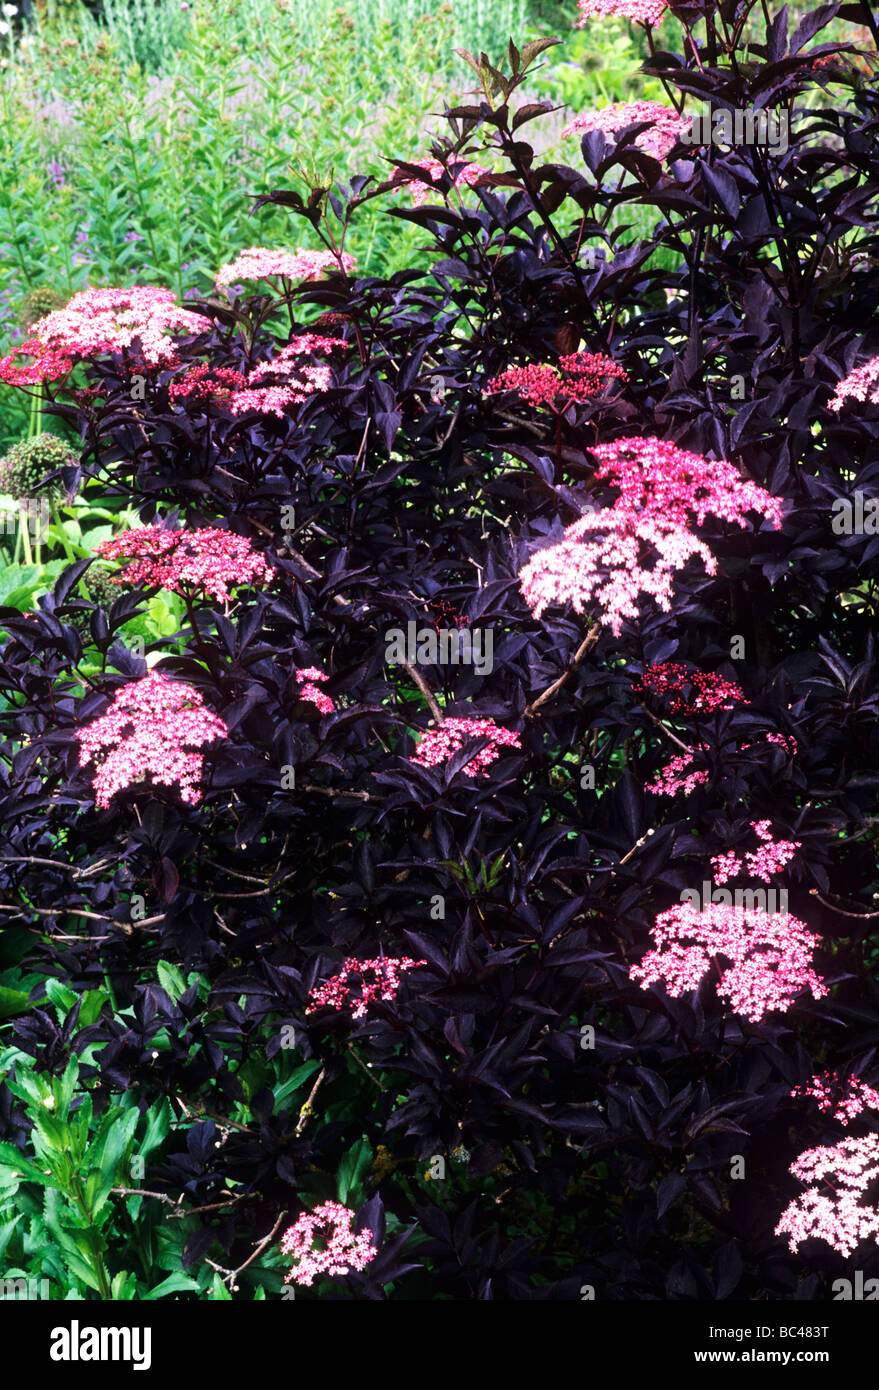 Sambucus nigra black beauty garden plant pink flower flowers black sambucus nigra black beauty garden plant pink flower flowers black dark leaf leaves foliage mightylinksfo